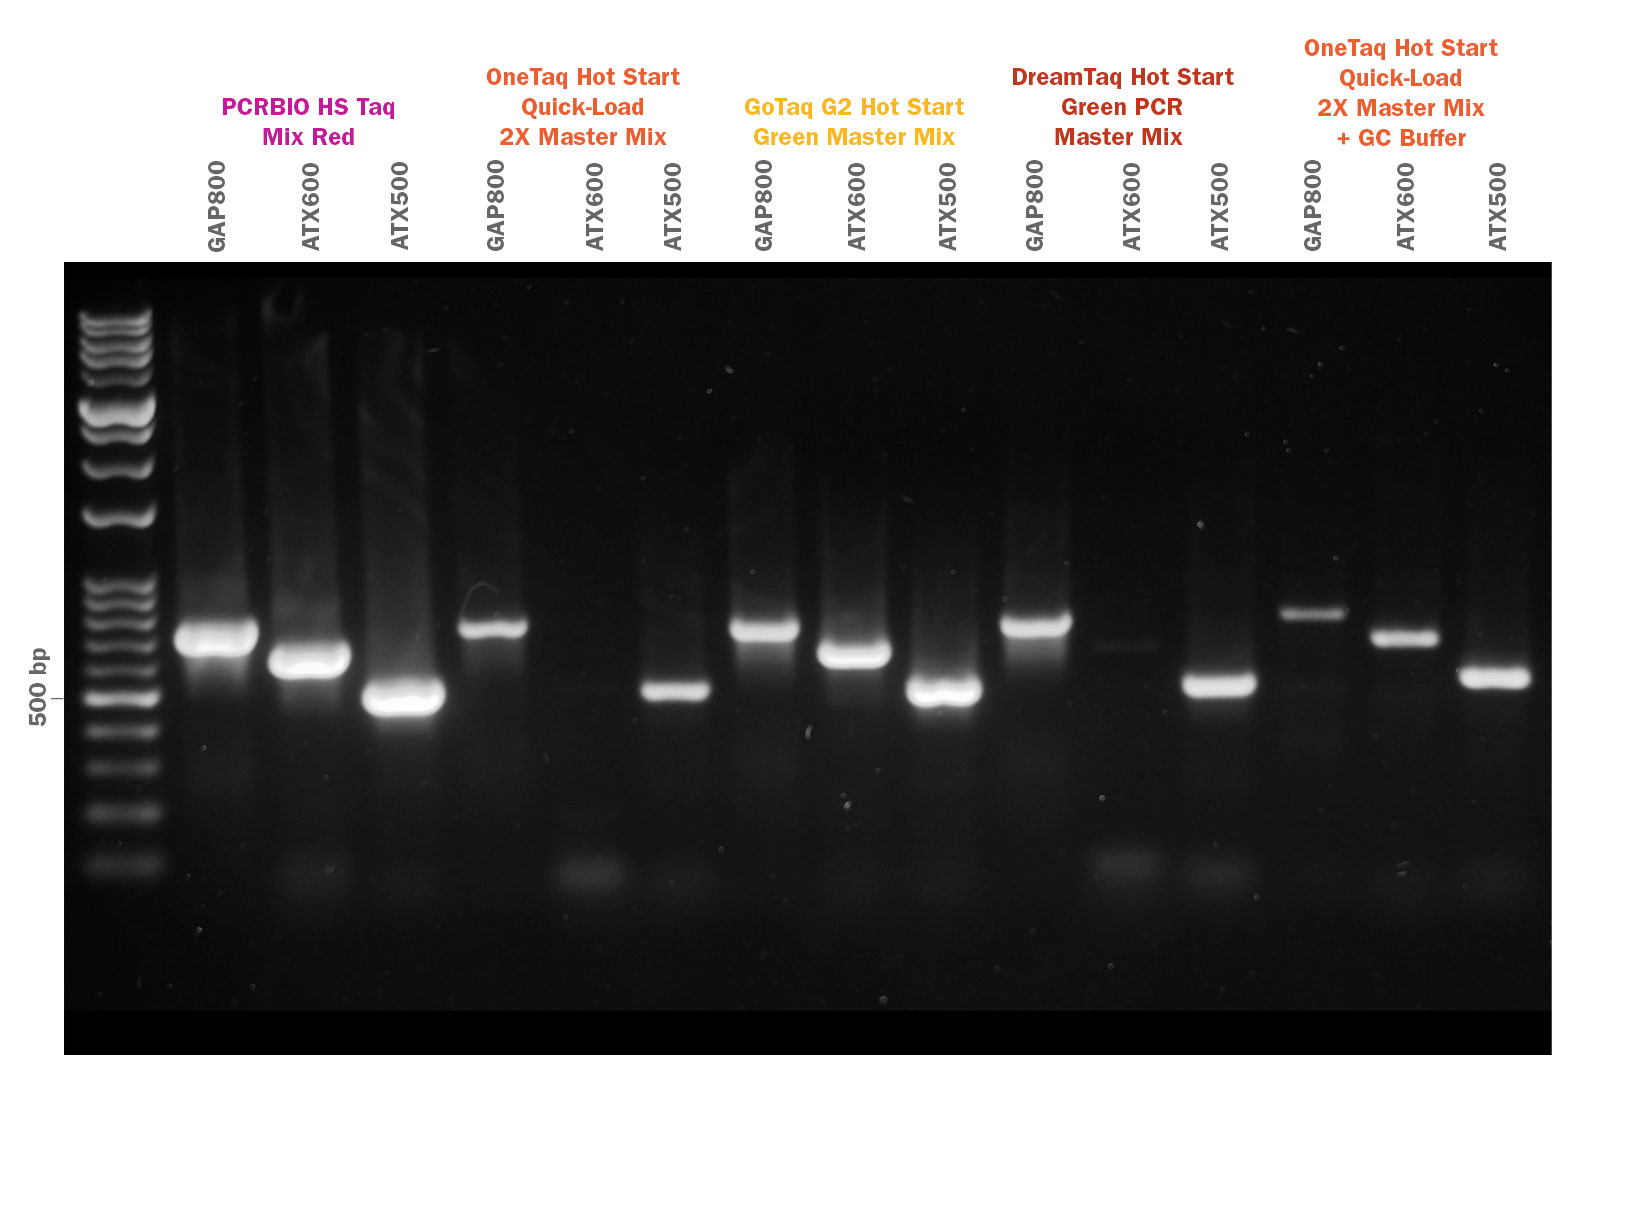 Gel image showing PCRBIO HS Taq Mix Red competitor comparison of GC rich amplification